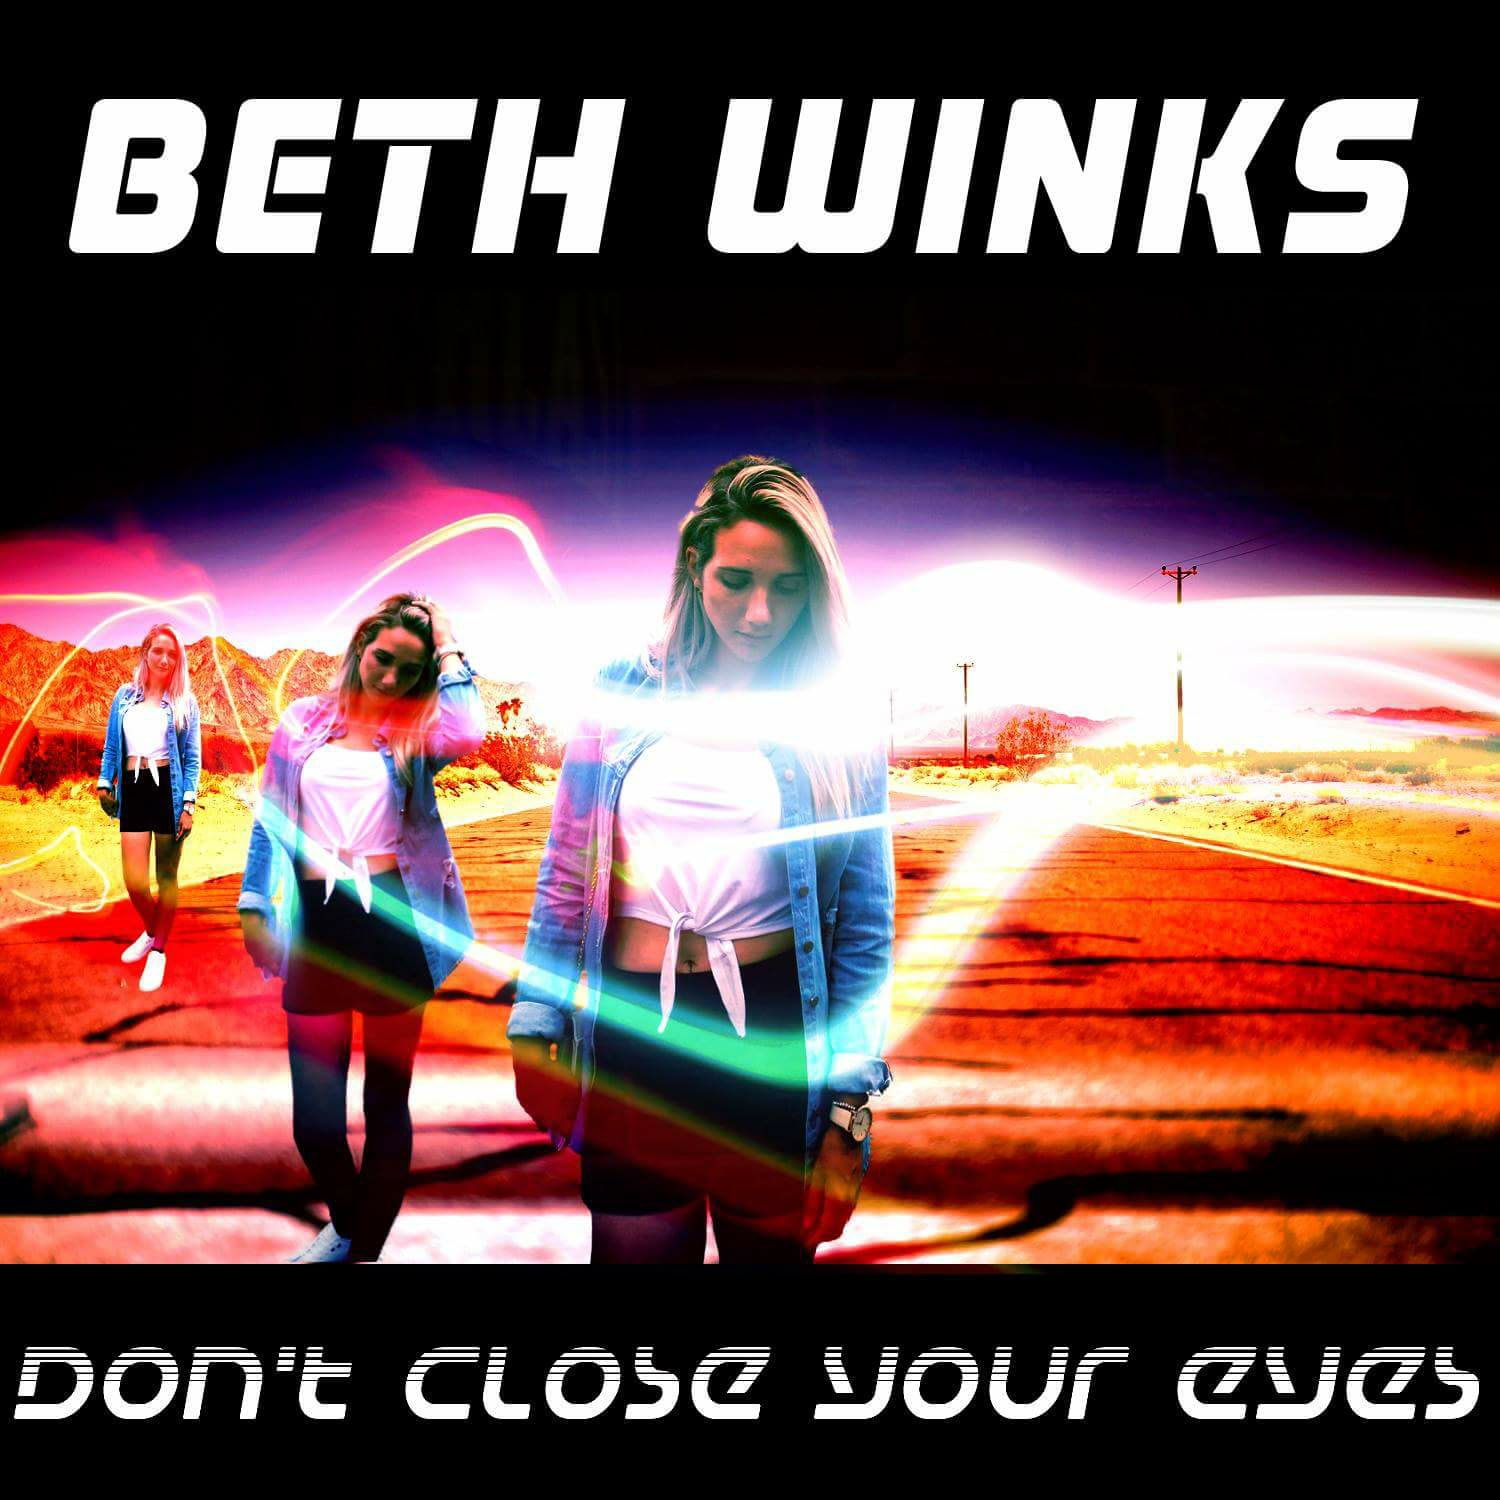 Beth Winks - New Track called 'Don't Close Your Eyes'